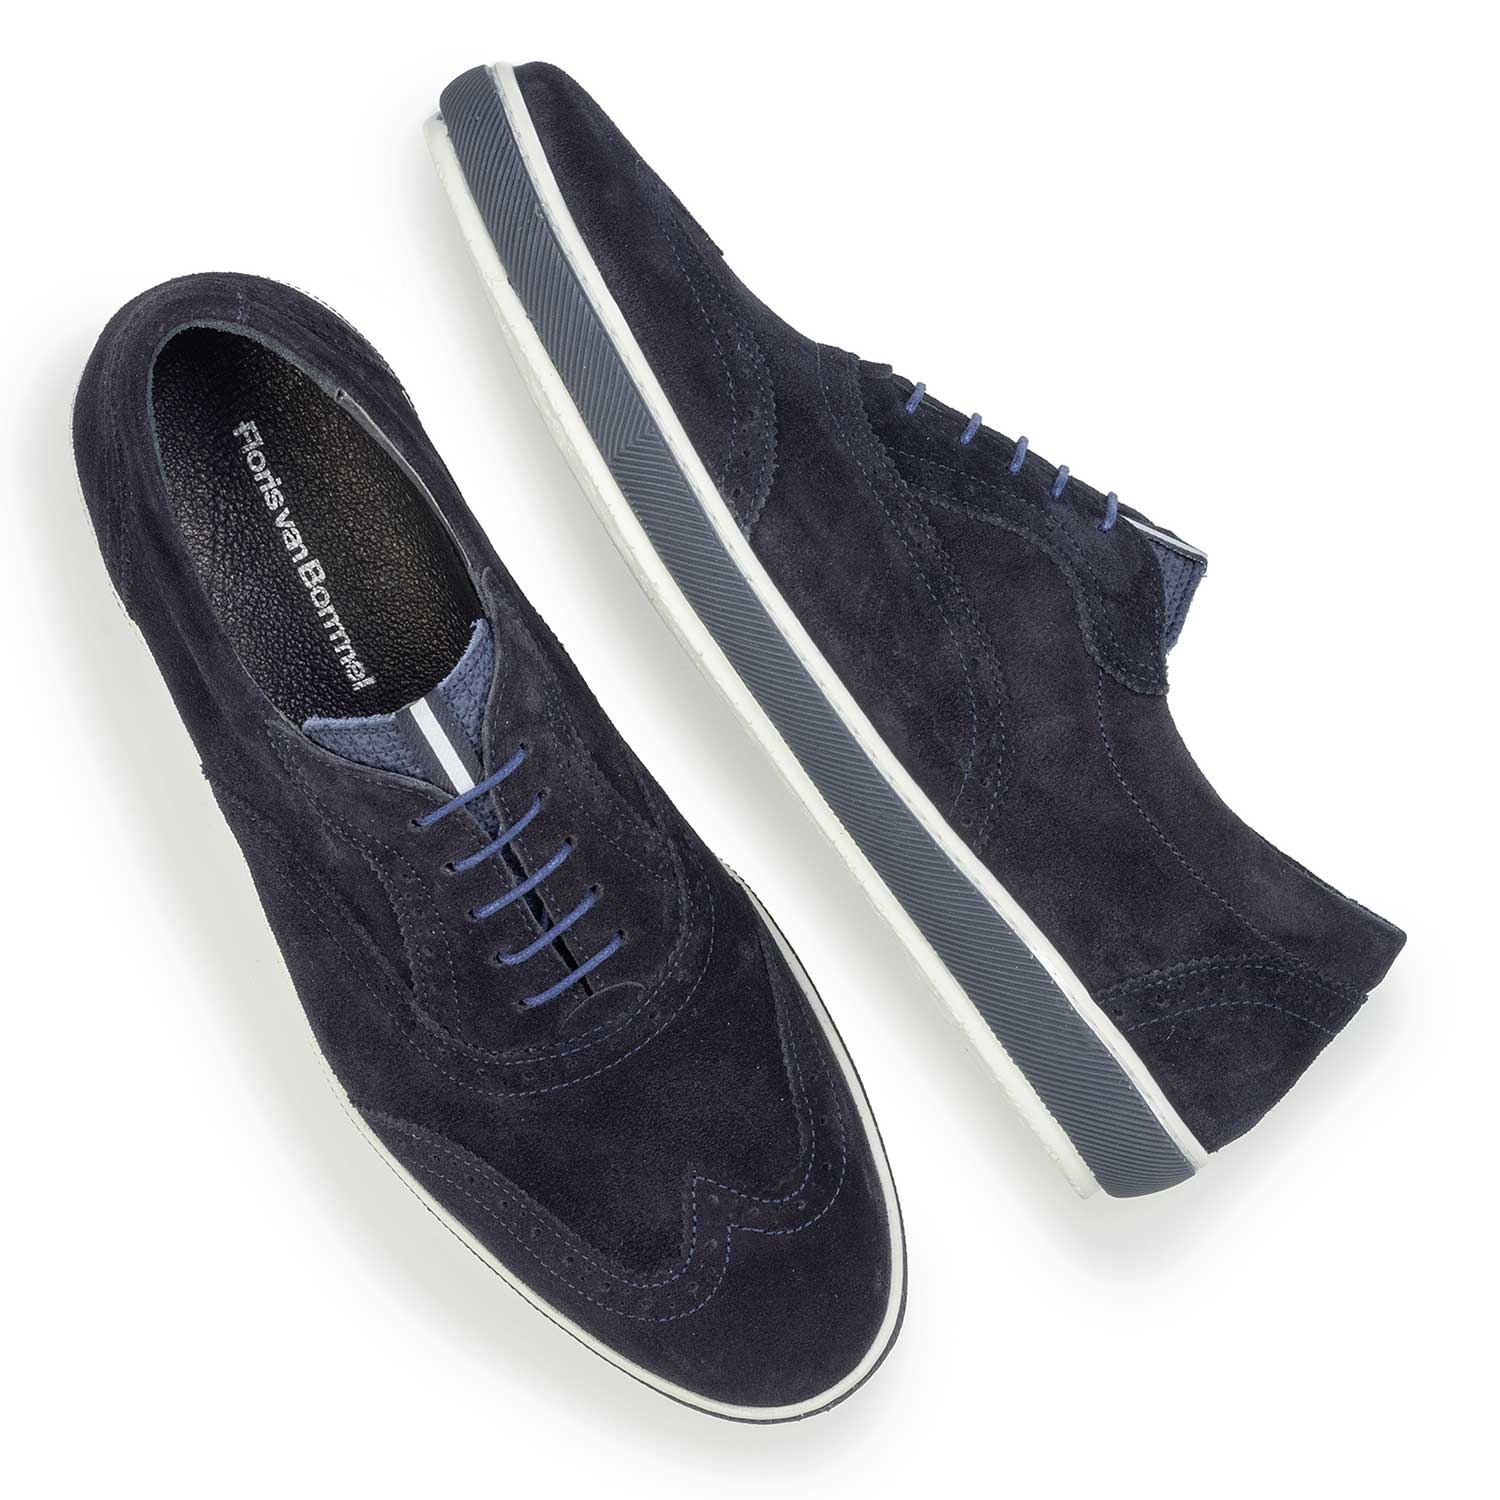 19036/39 - Dark blue suede leather brogue shoe